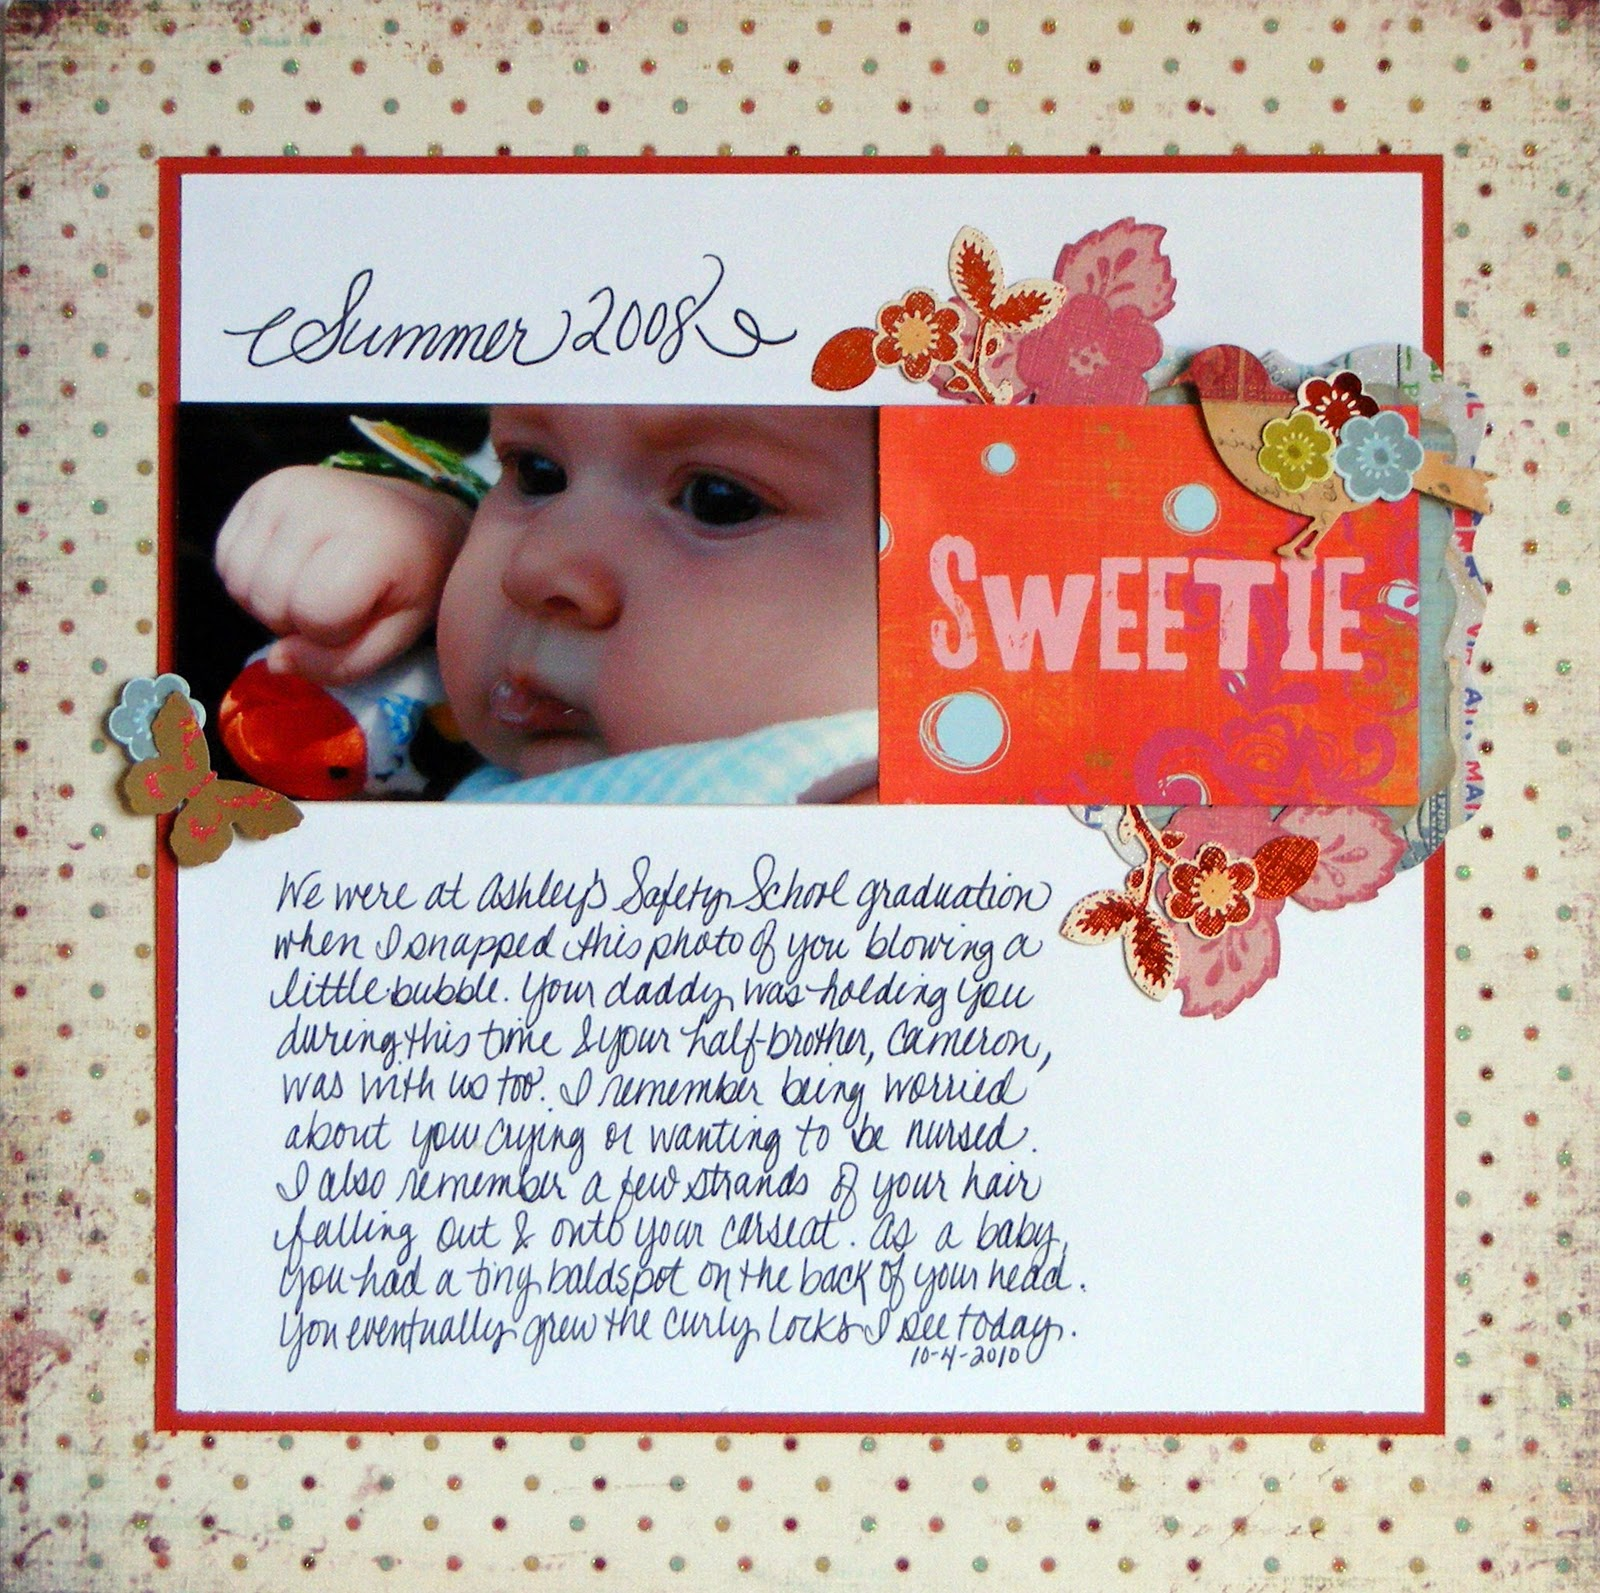 Baby journal scrapbook ideas - Baby Scrapbook Layouts Journaling To Remember Your Baby S Special Moments